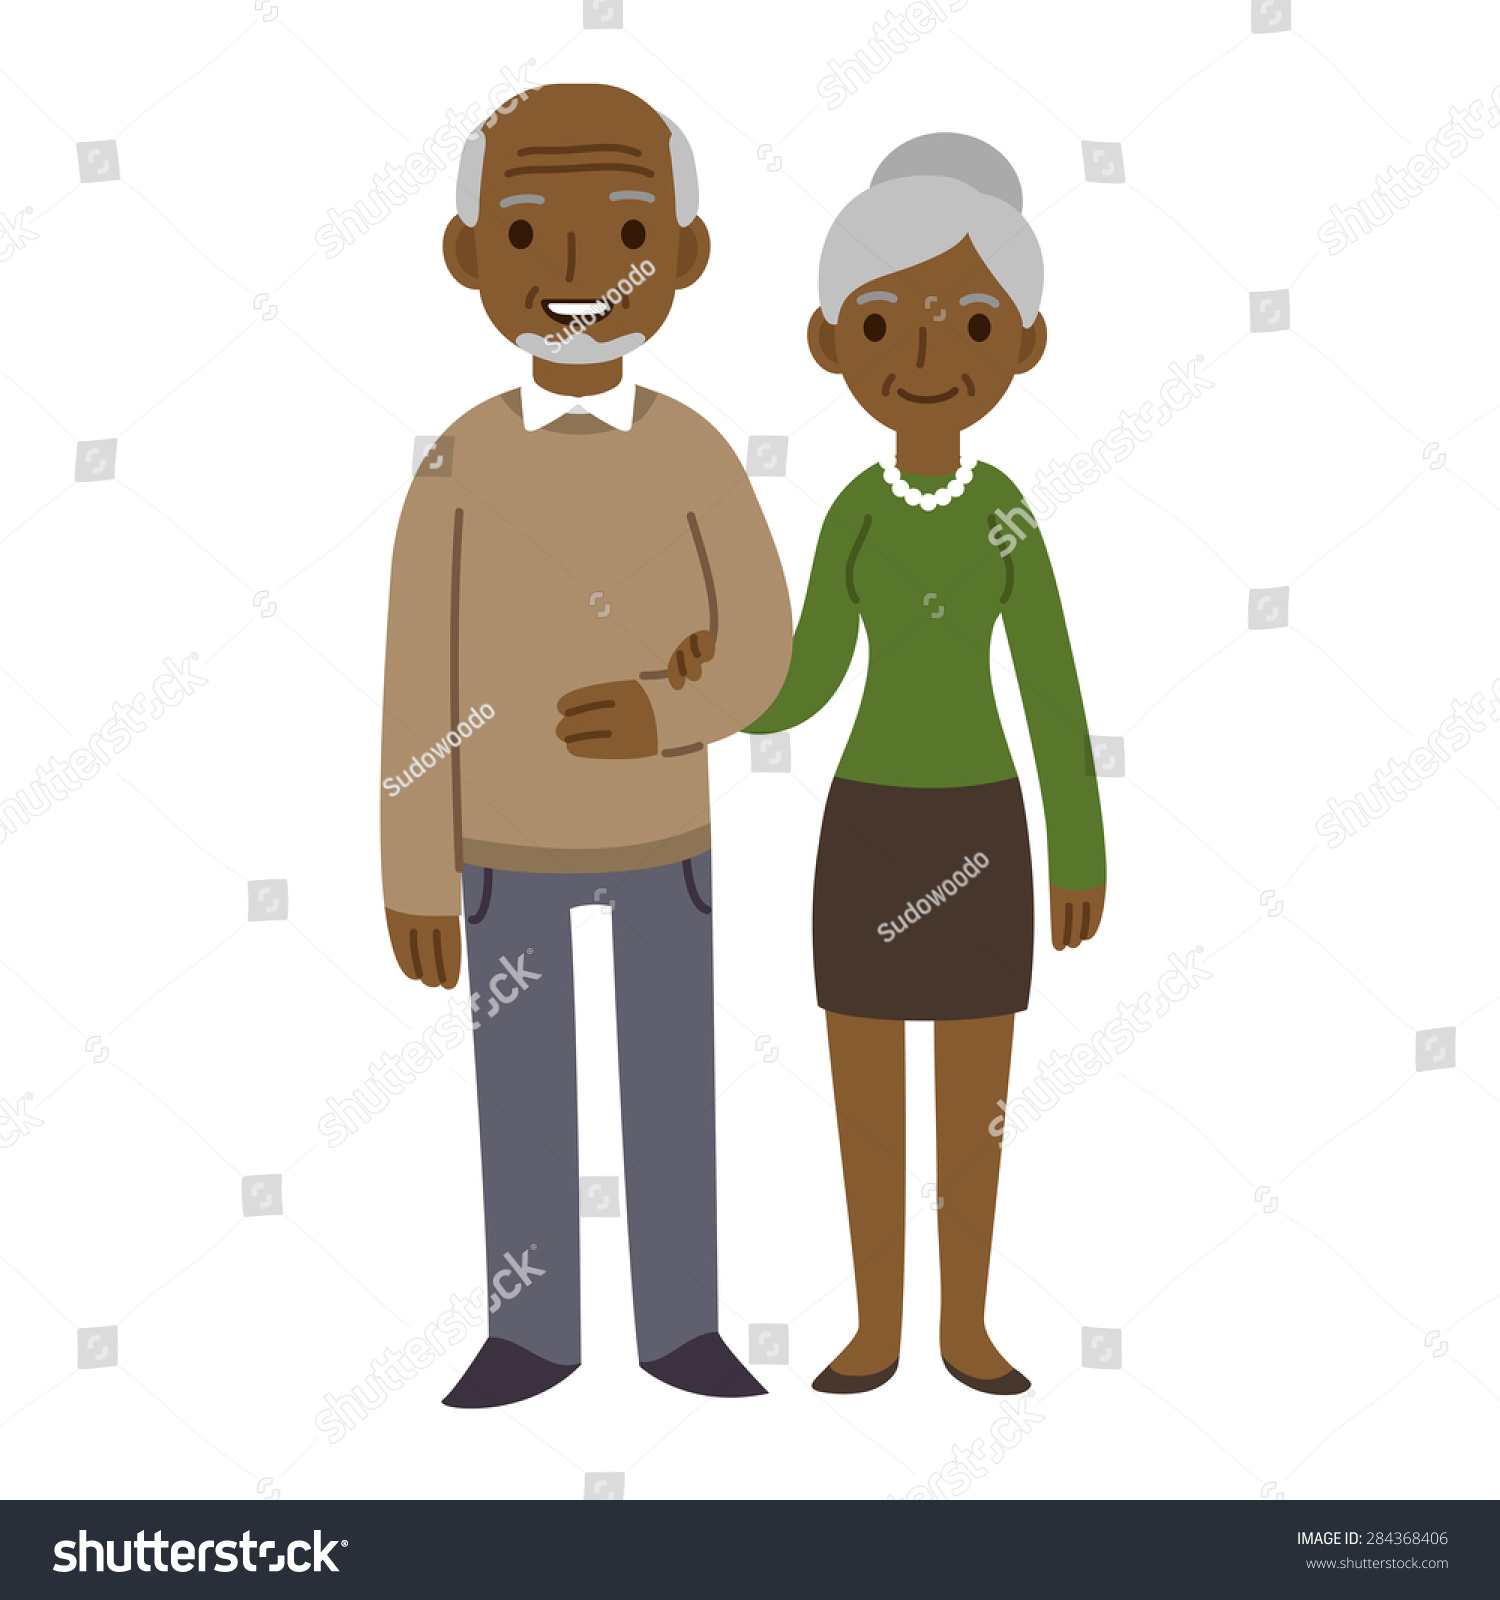 Stock illustrations senior citizen lady with a sign stock clipart - Cute Cartoon Black Senior Couple Isolated On White